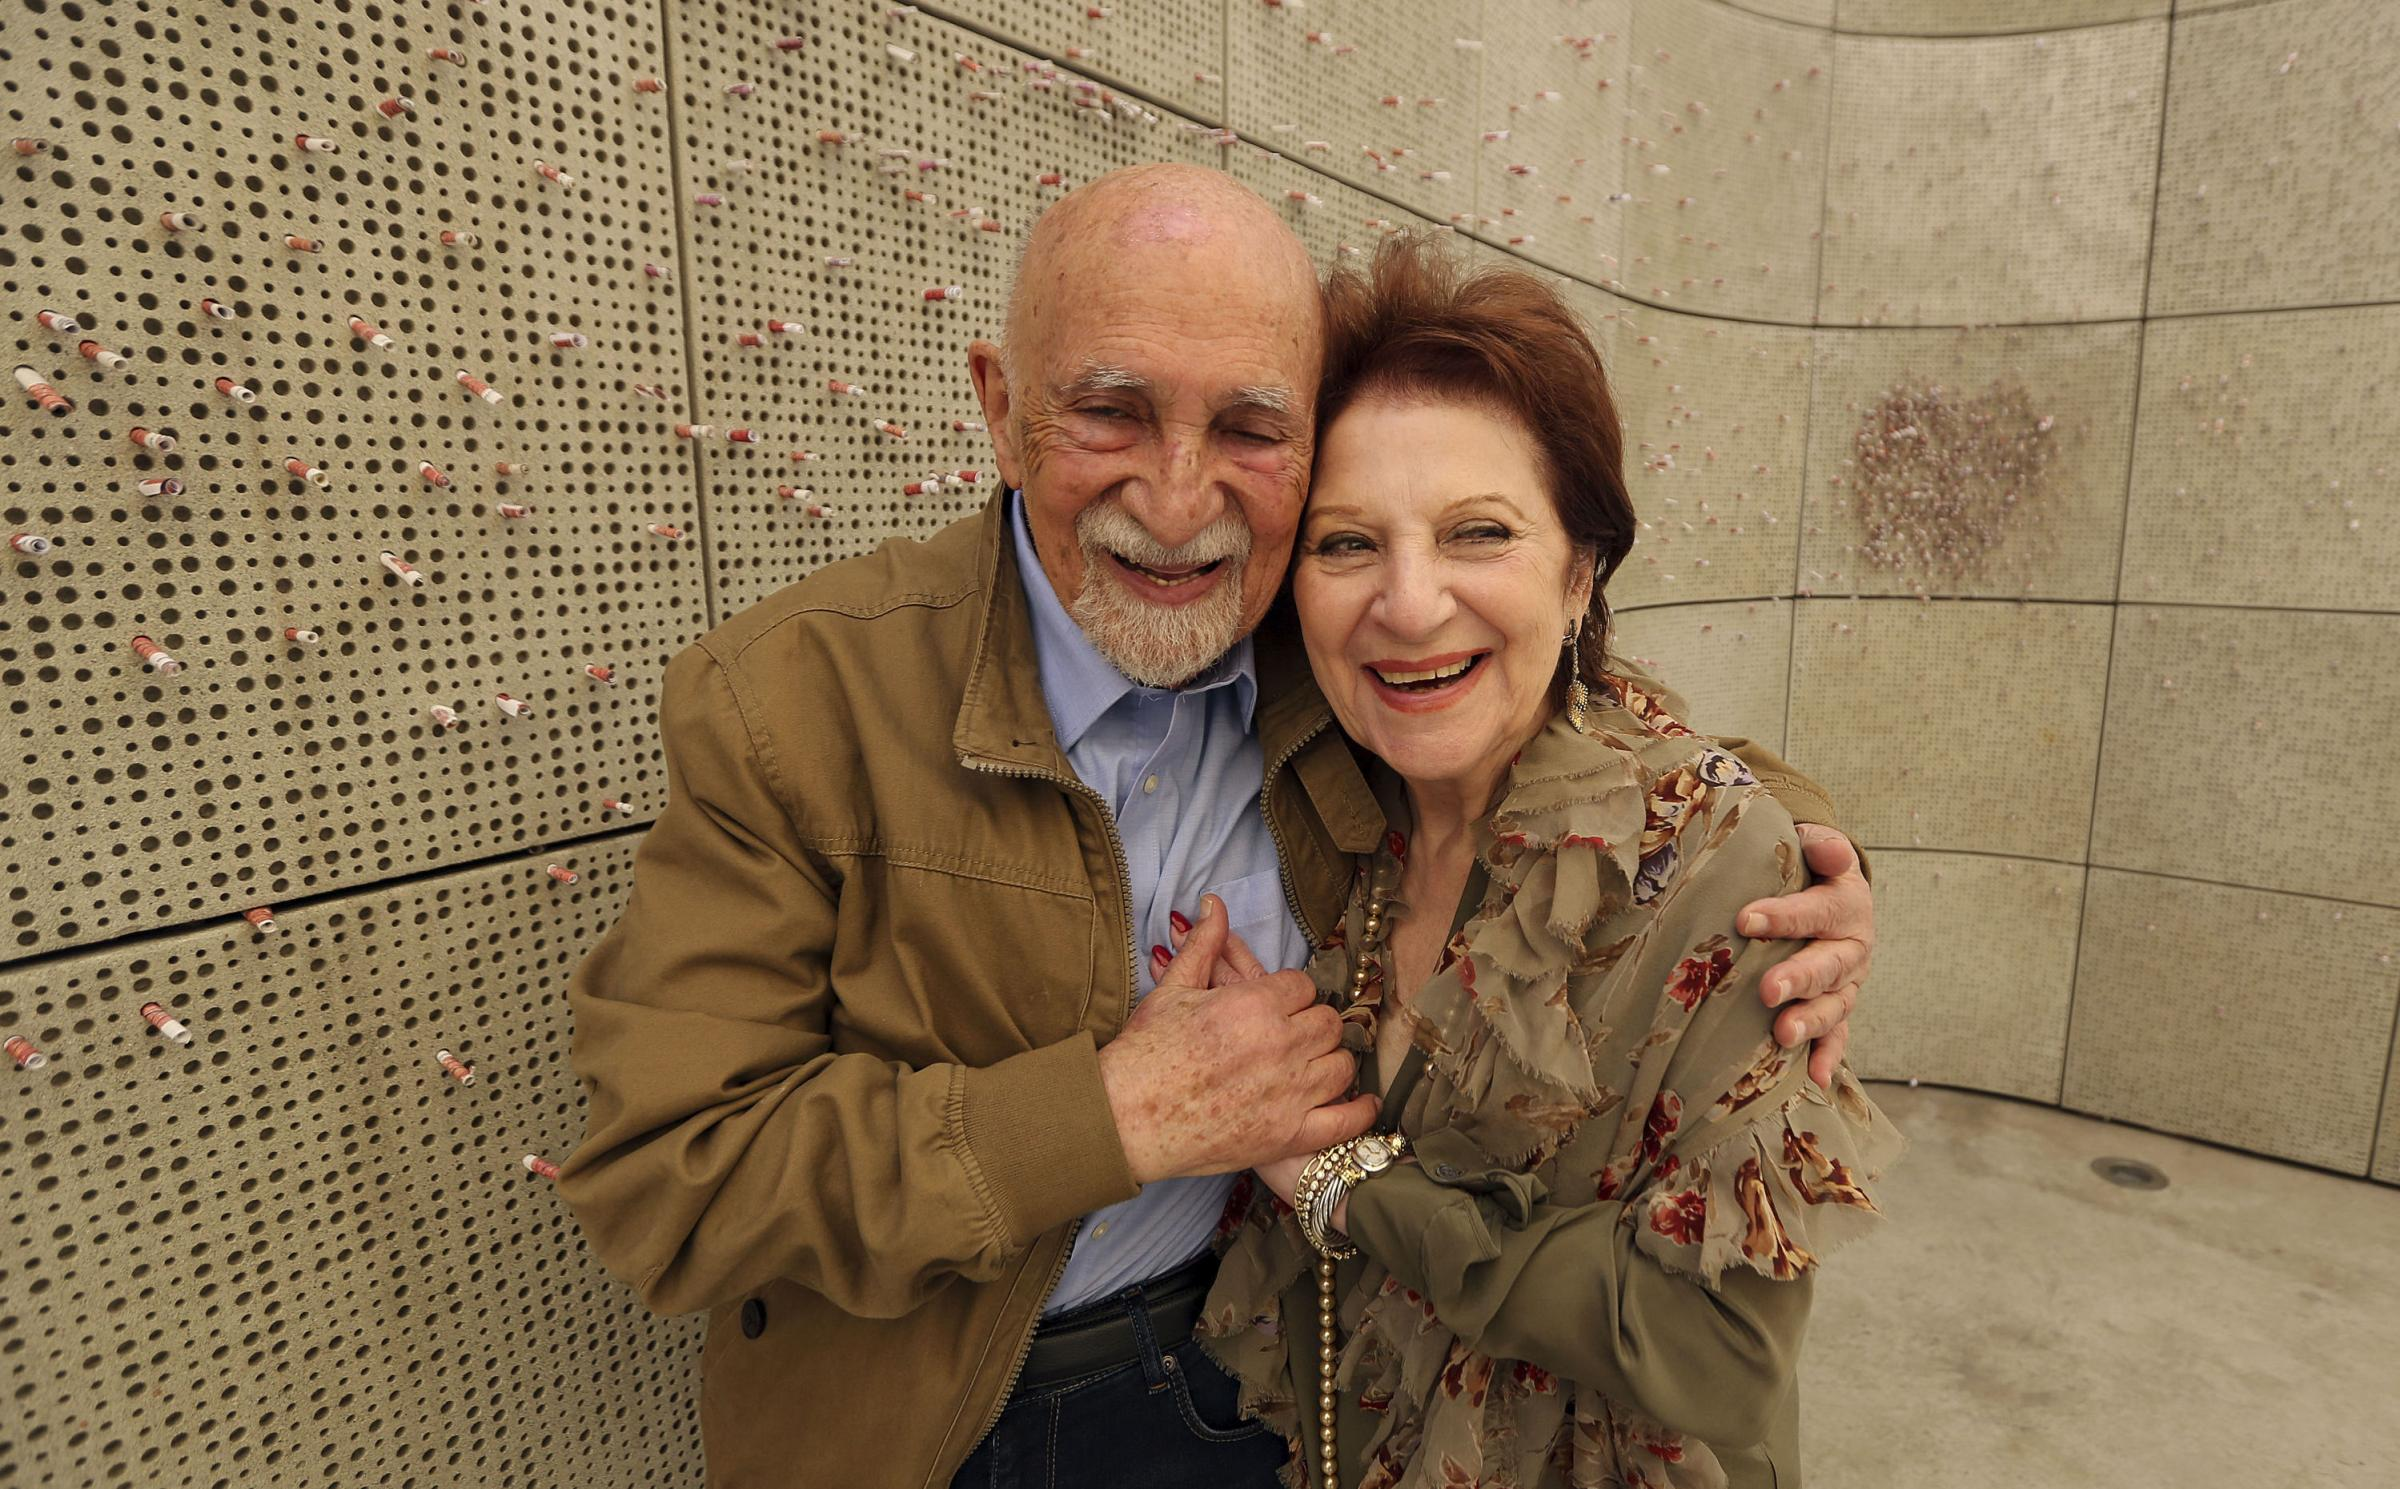 Holocaust survivors Simon Gronowski and Alice Gerstel Weit hug at the Los Angeles Holocaust Museum memorial. Photograph: AP